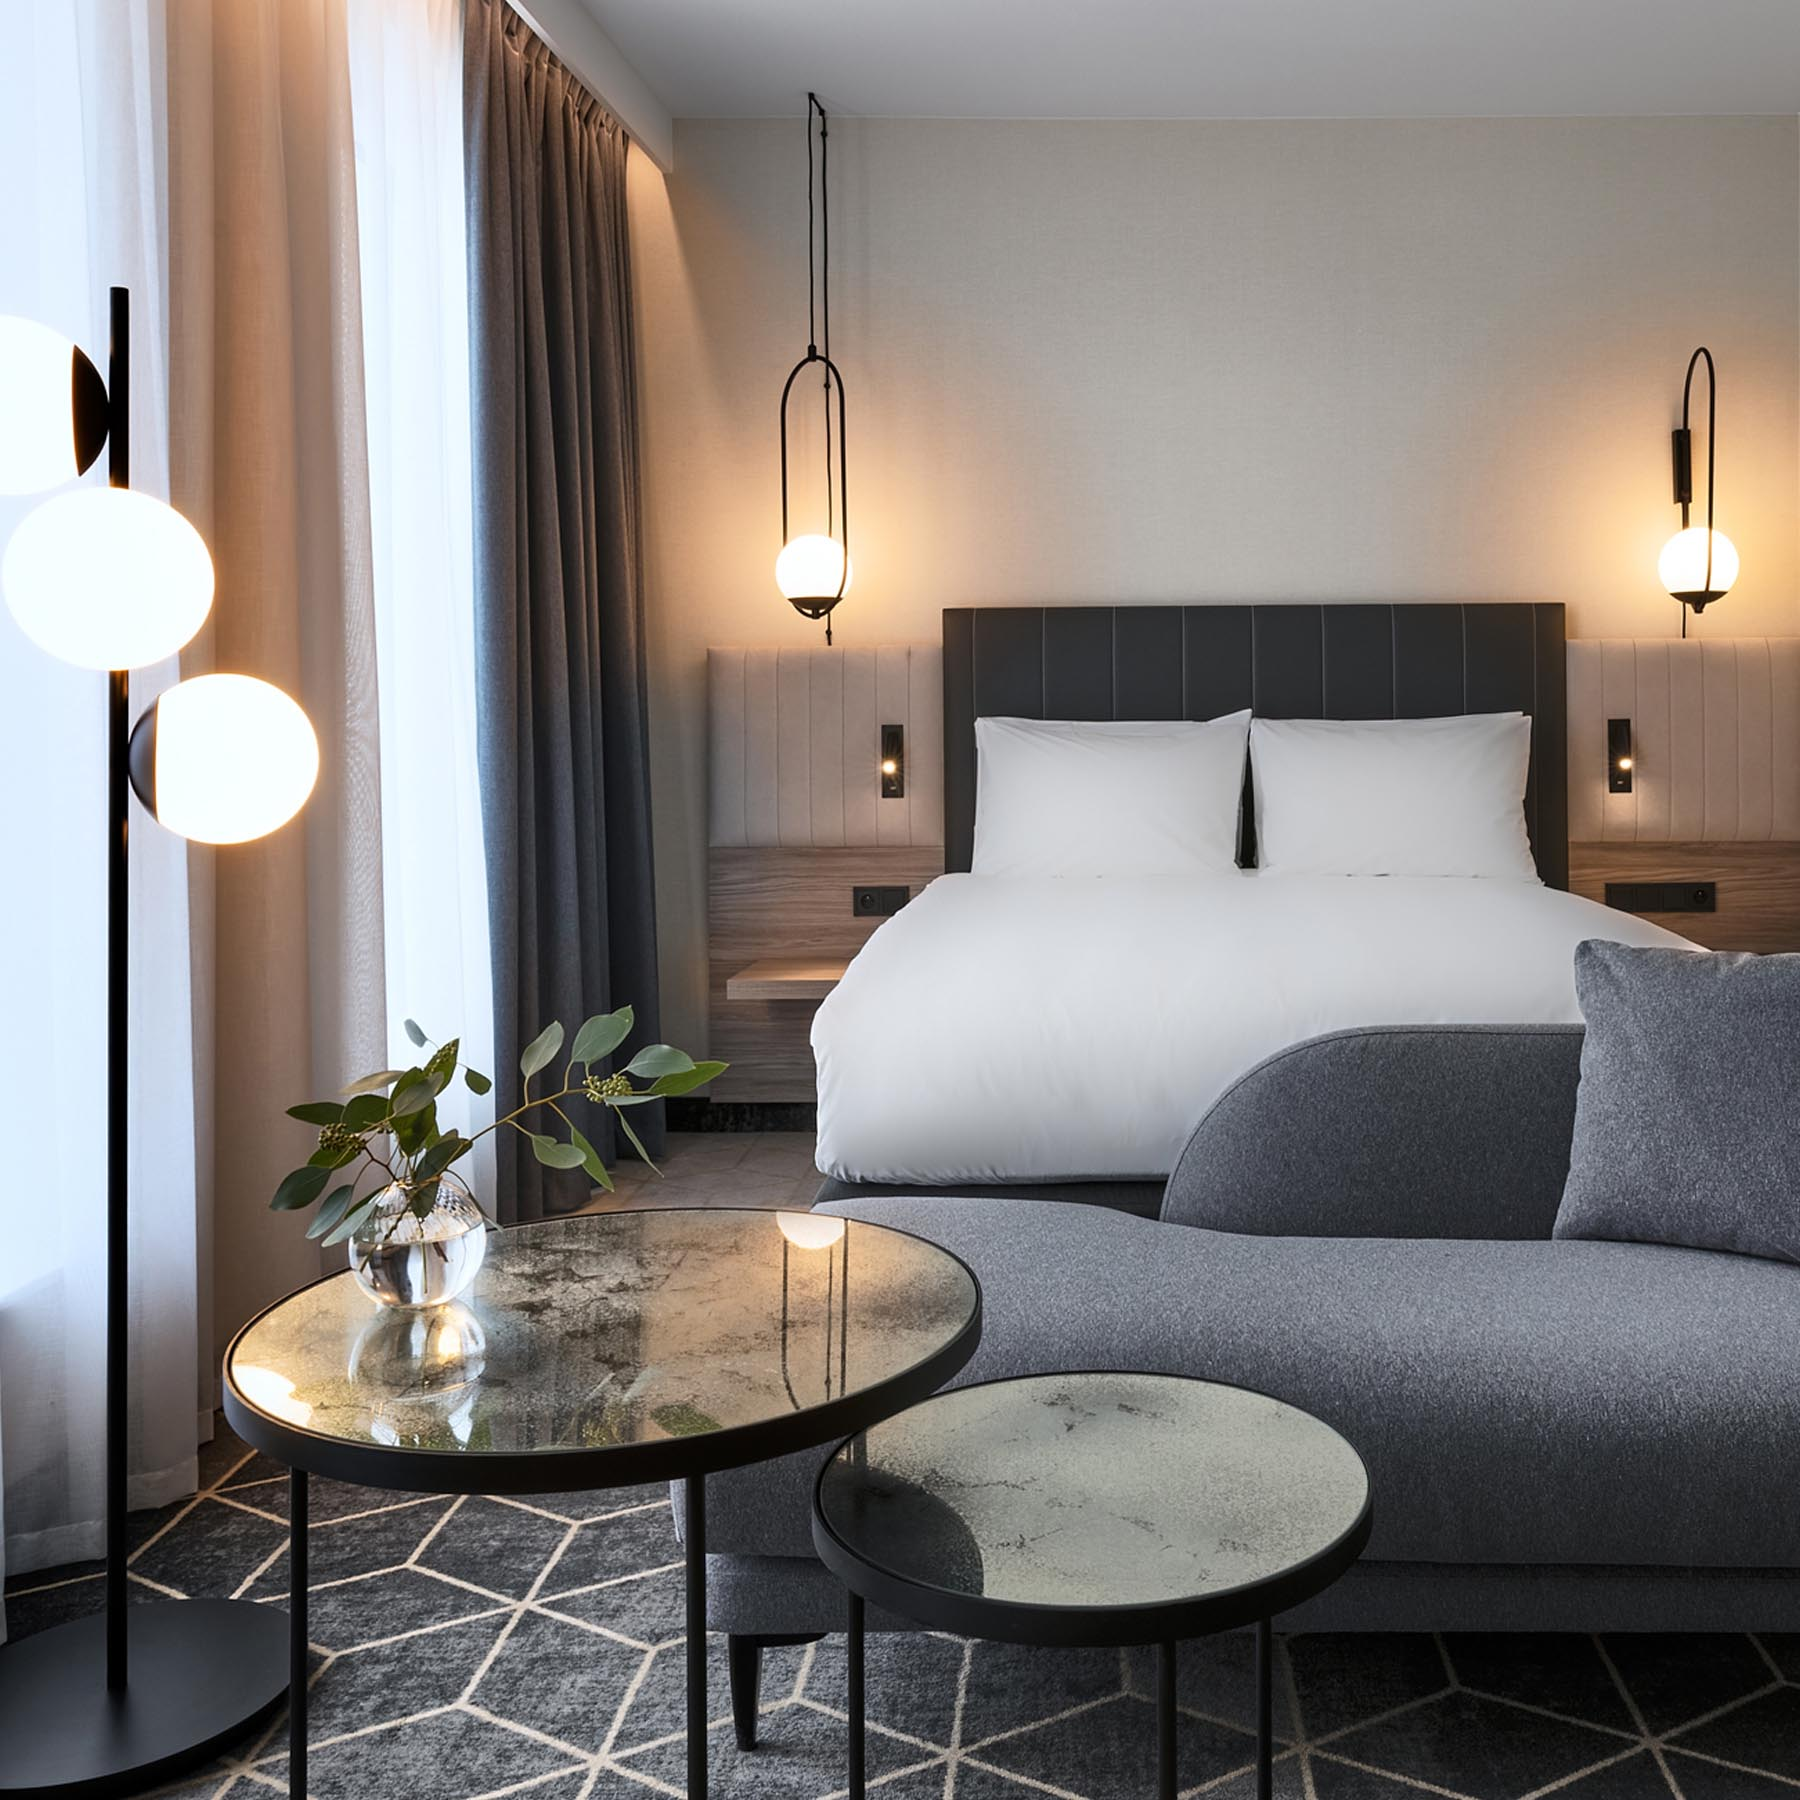 A hotel room with a gray, white, and wood interior.